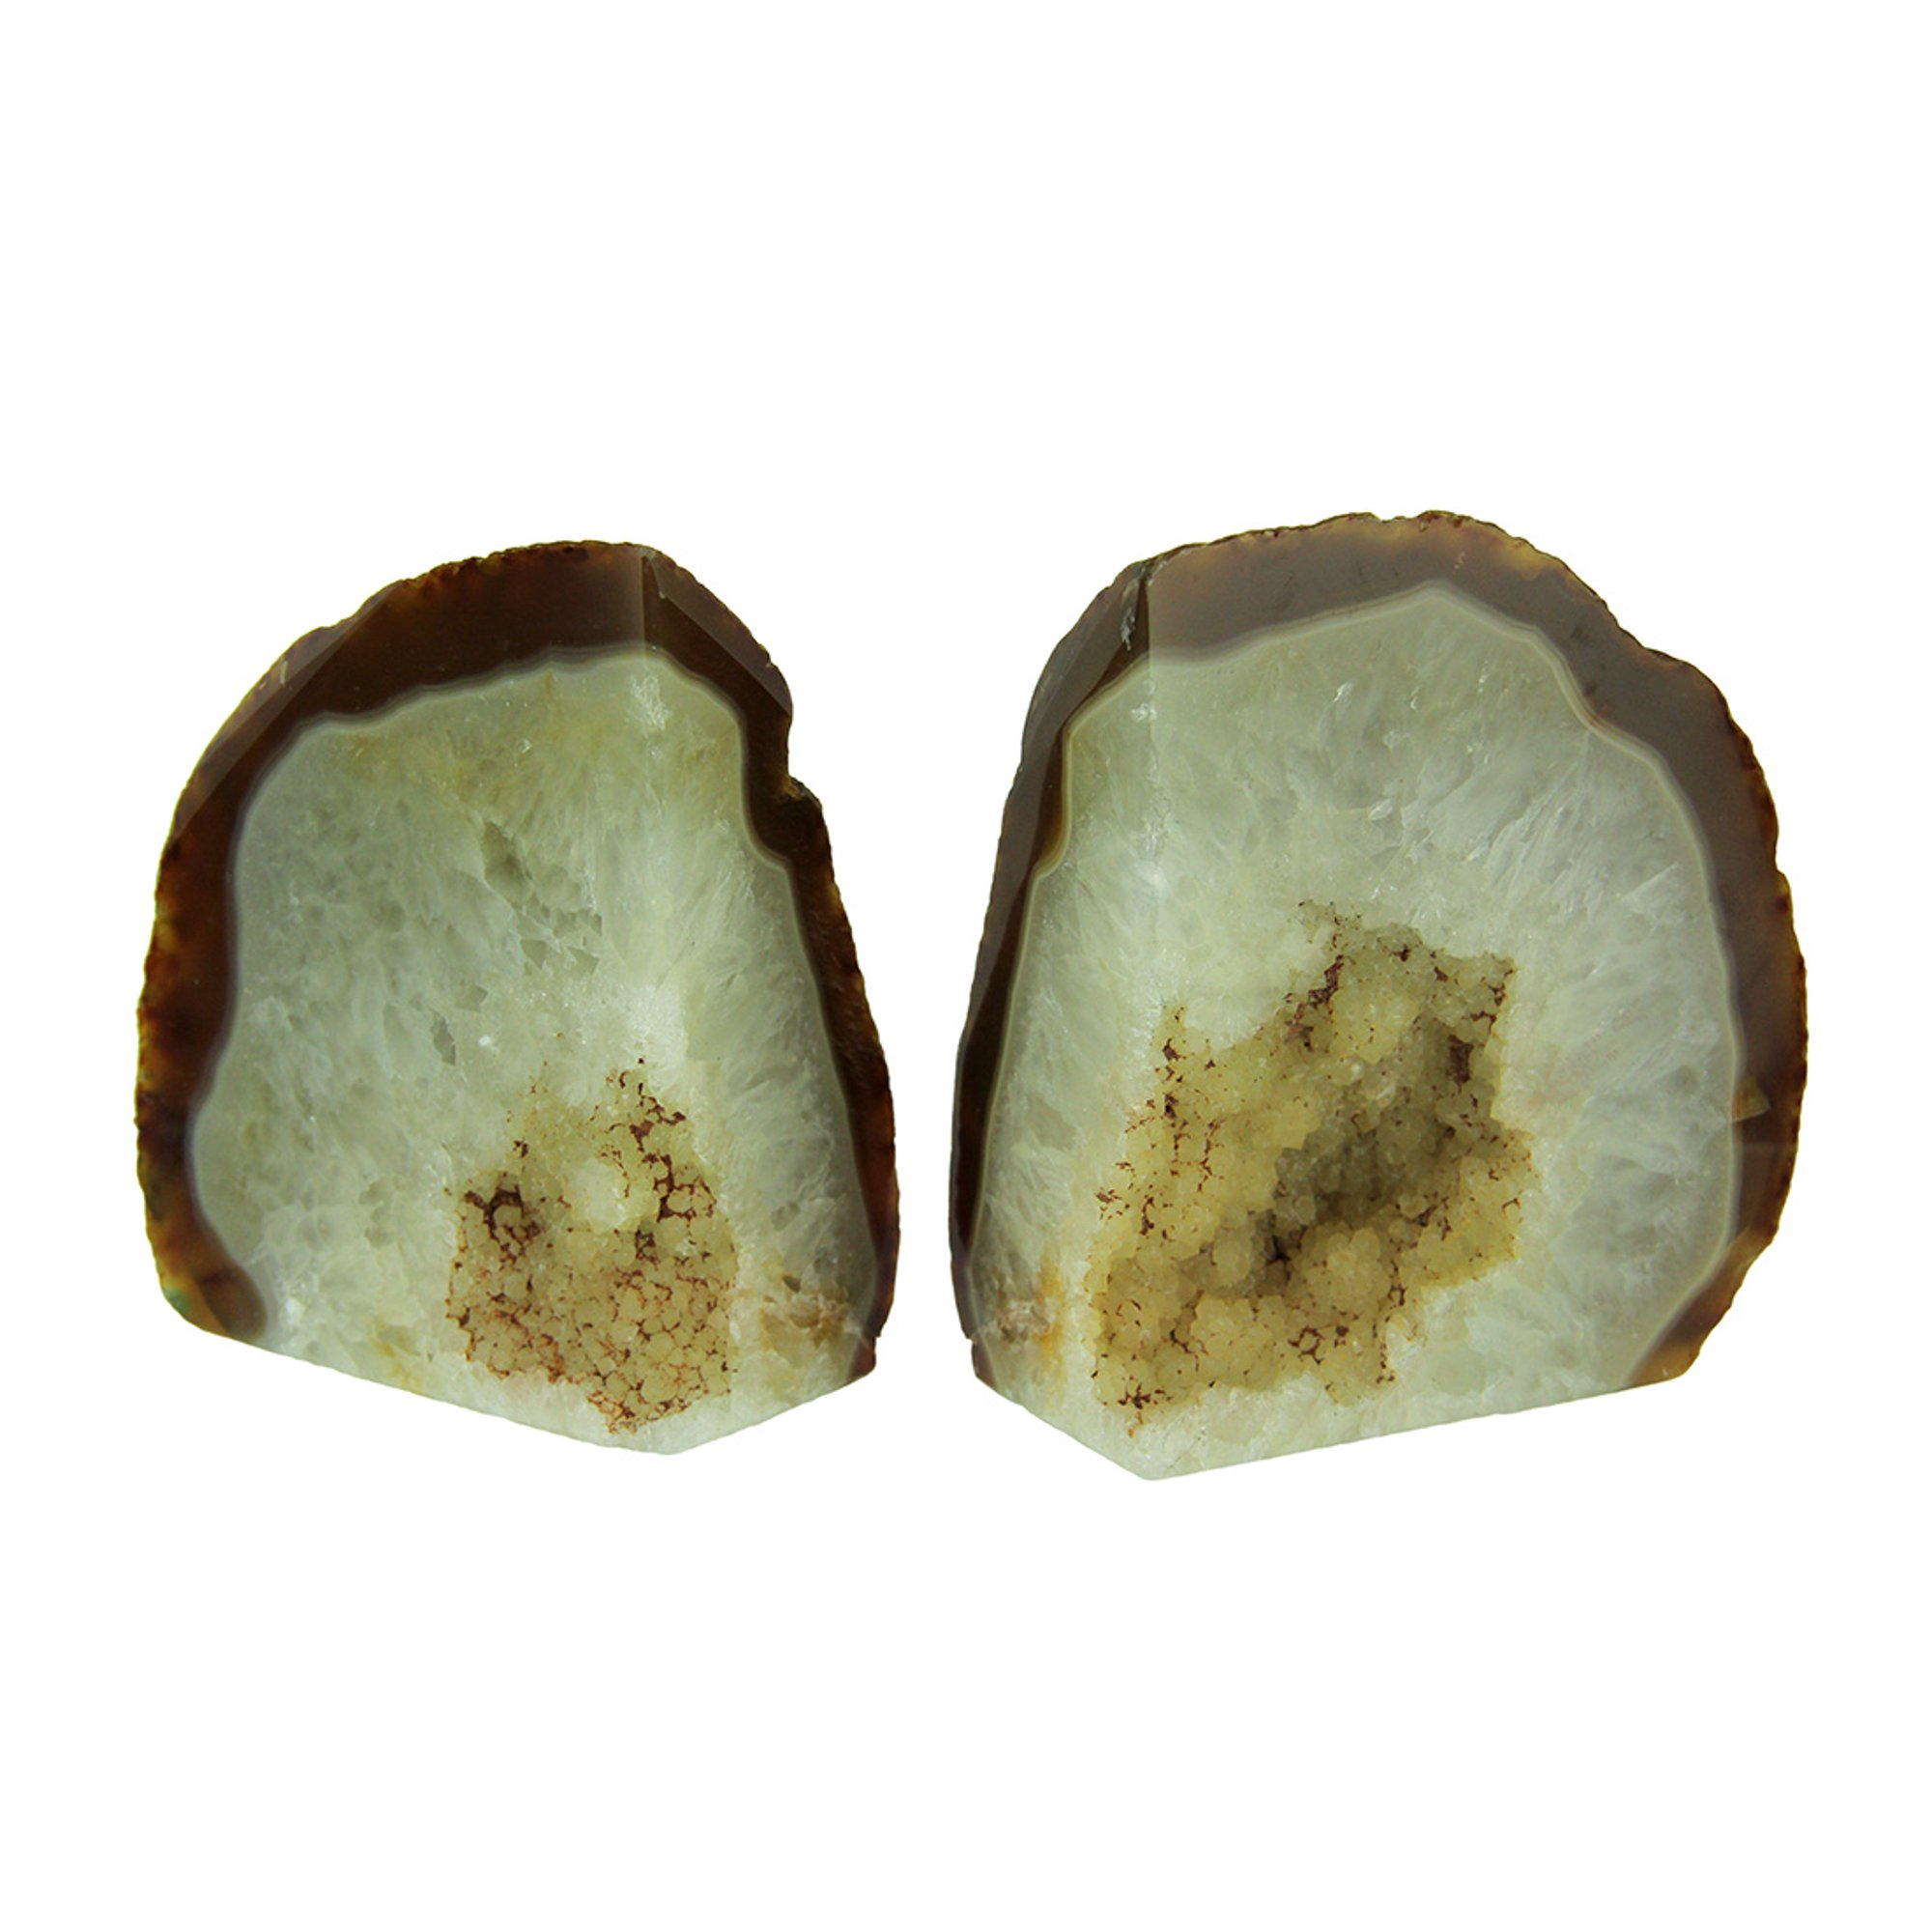 Small Polished Light Natural Brazilian Agate Geode Bookends 4 Pounds Walmart Canada